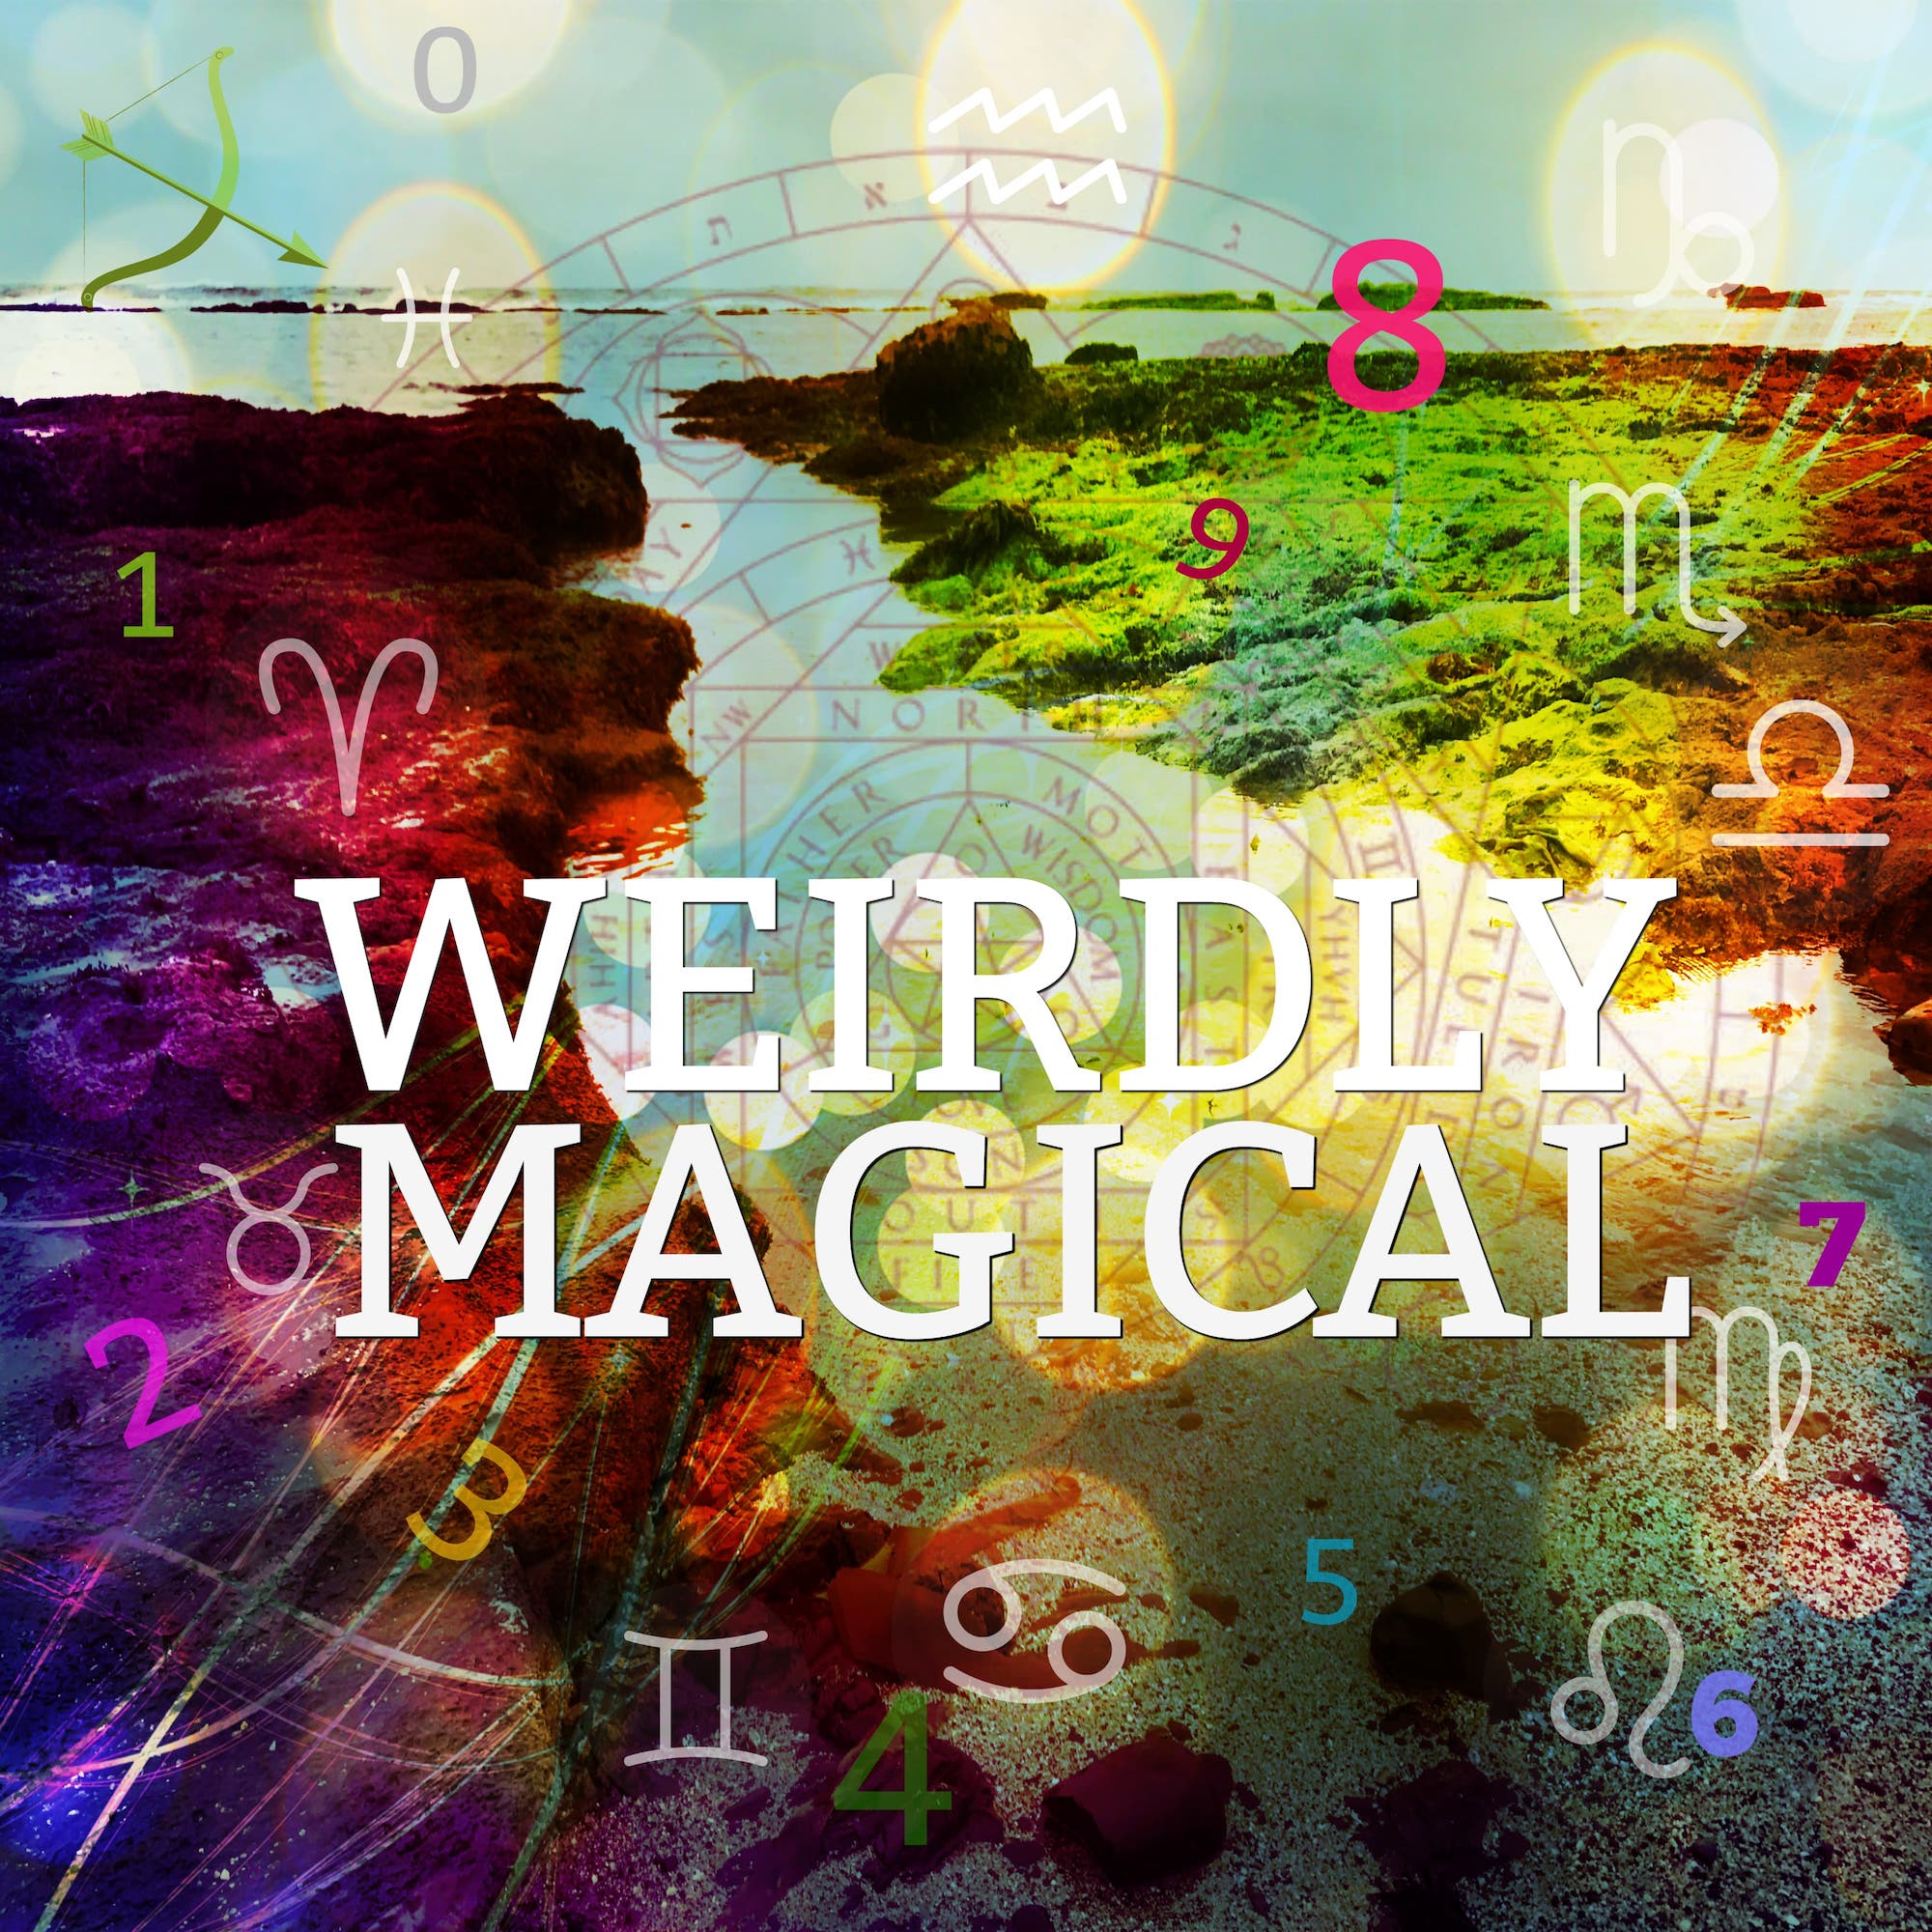 Weirdly Magical with Jen and Lou - Astrology - Numerology - Weird Magic - Akashic Records show art